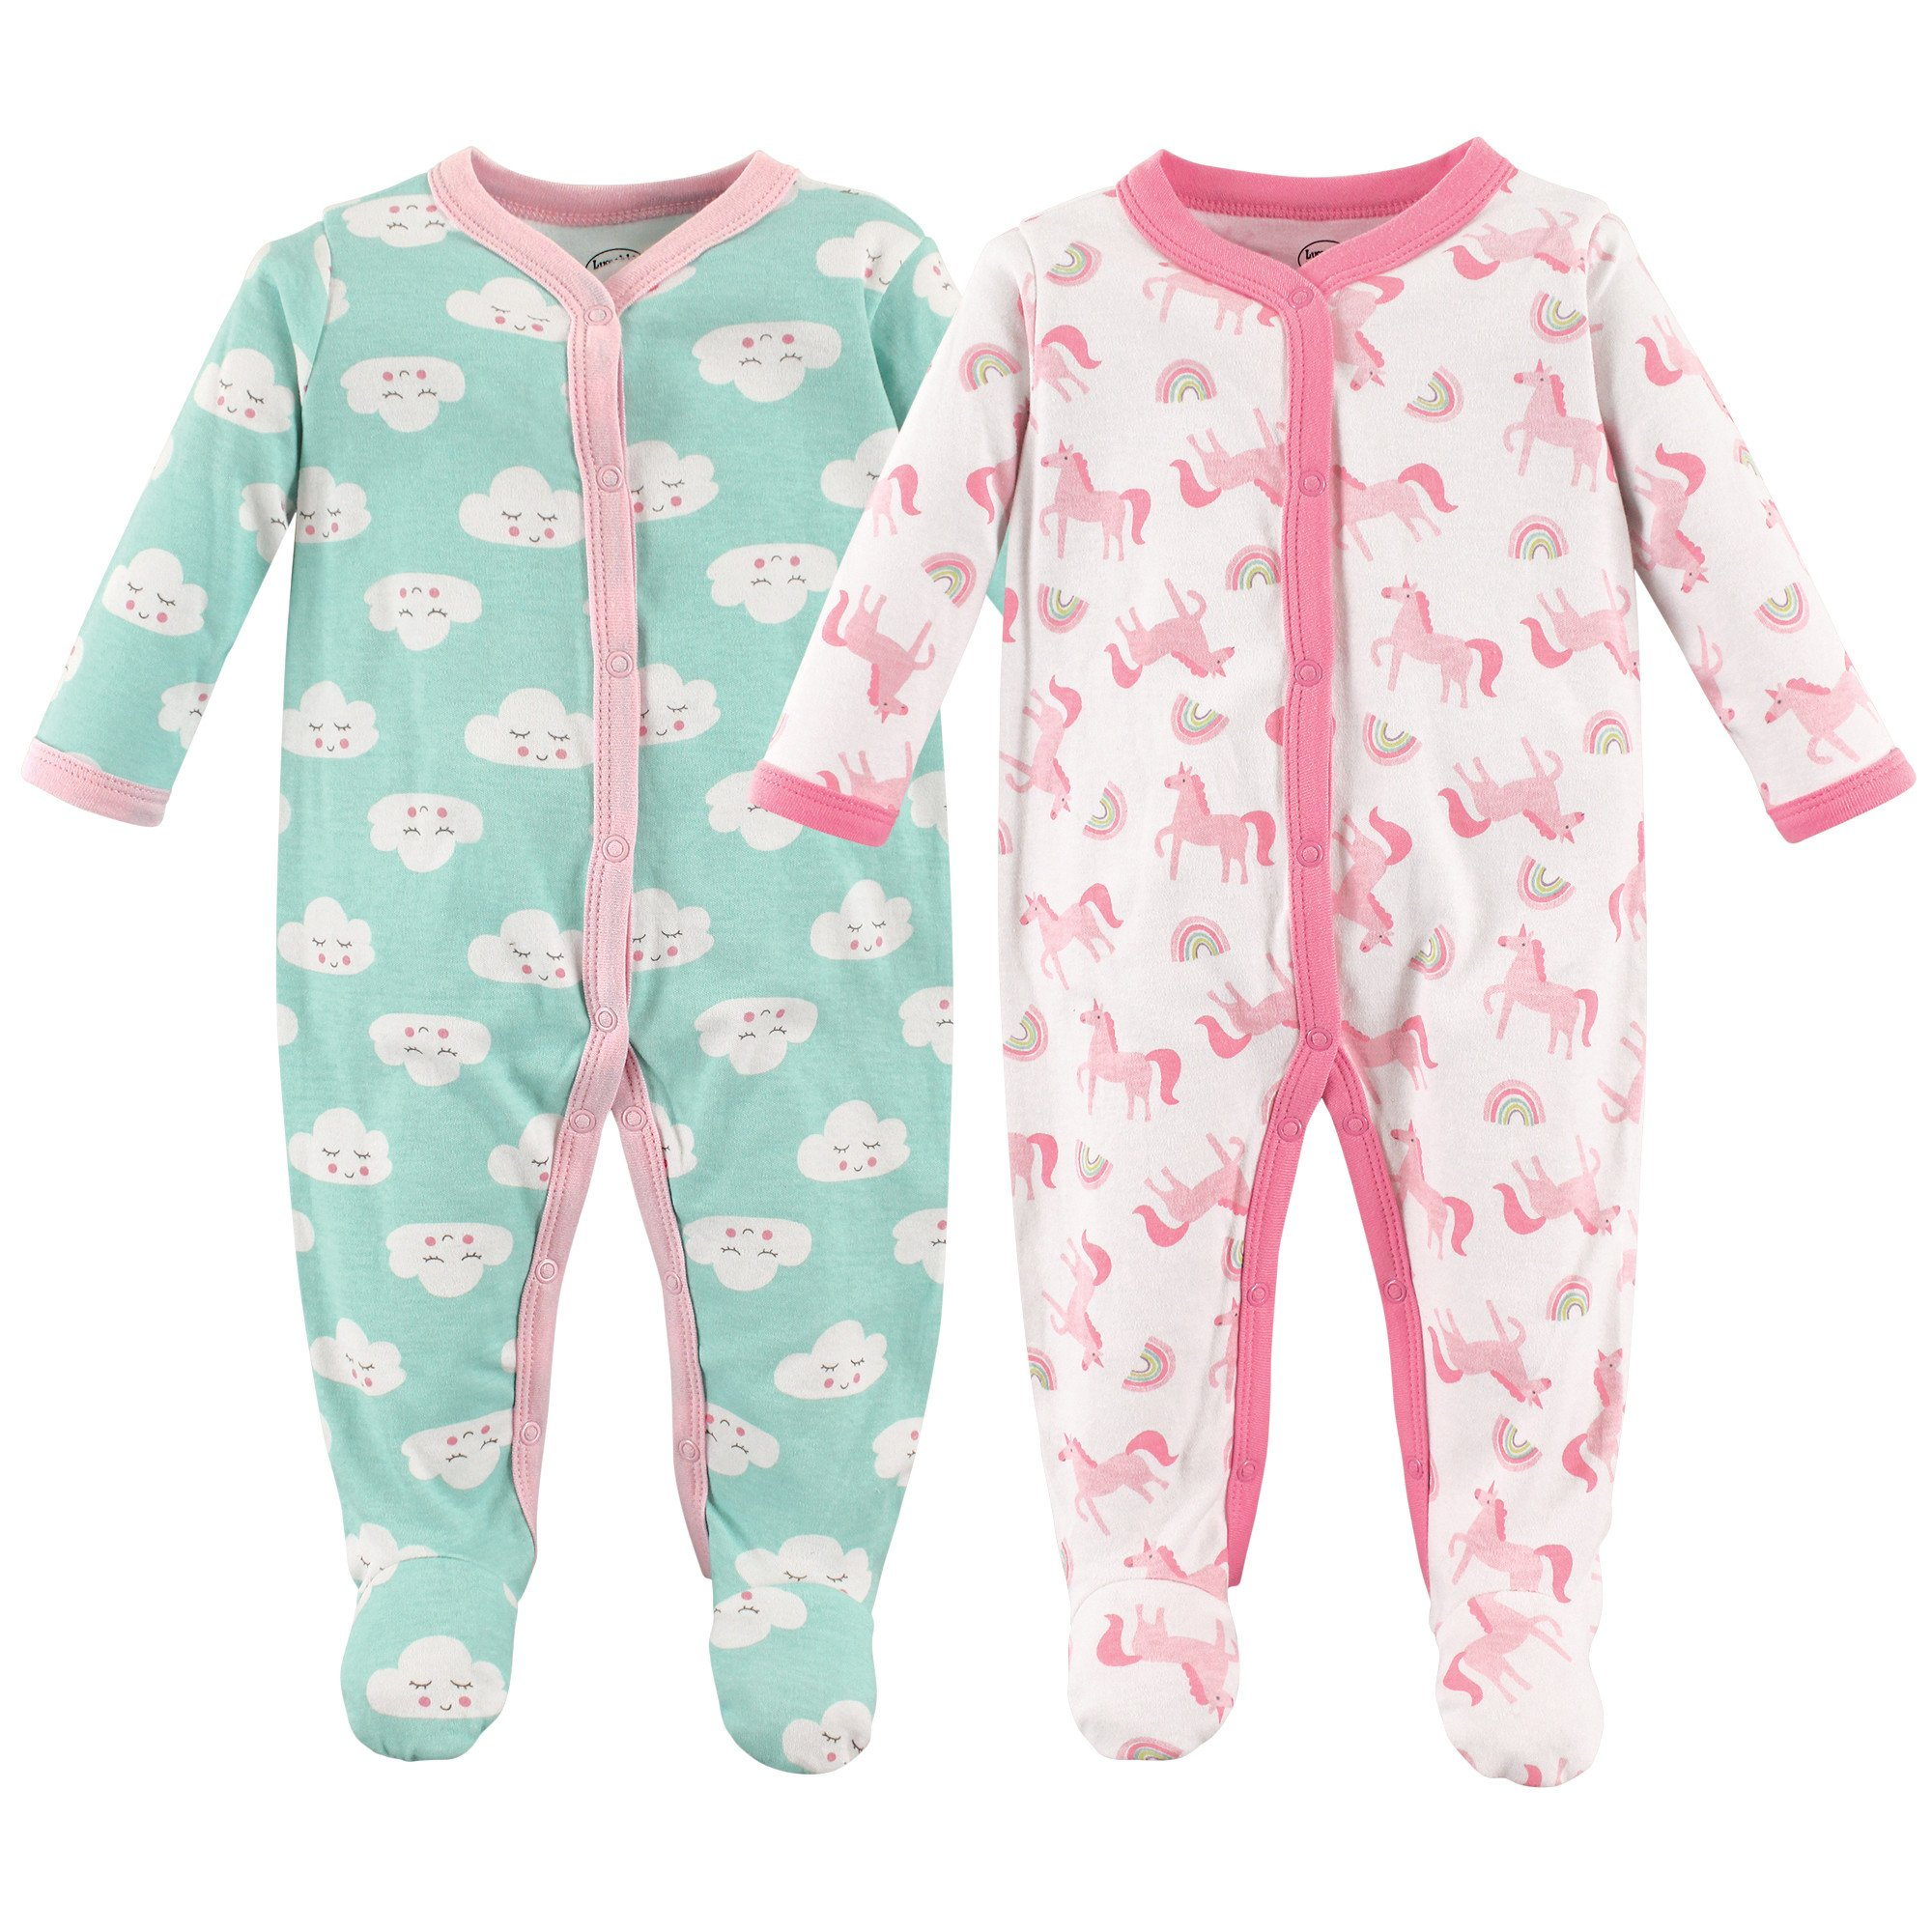 Luvable Friends Baby Cotton Snap Sleep and Play, Unicorn Pack, 3-6 Months